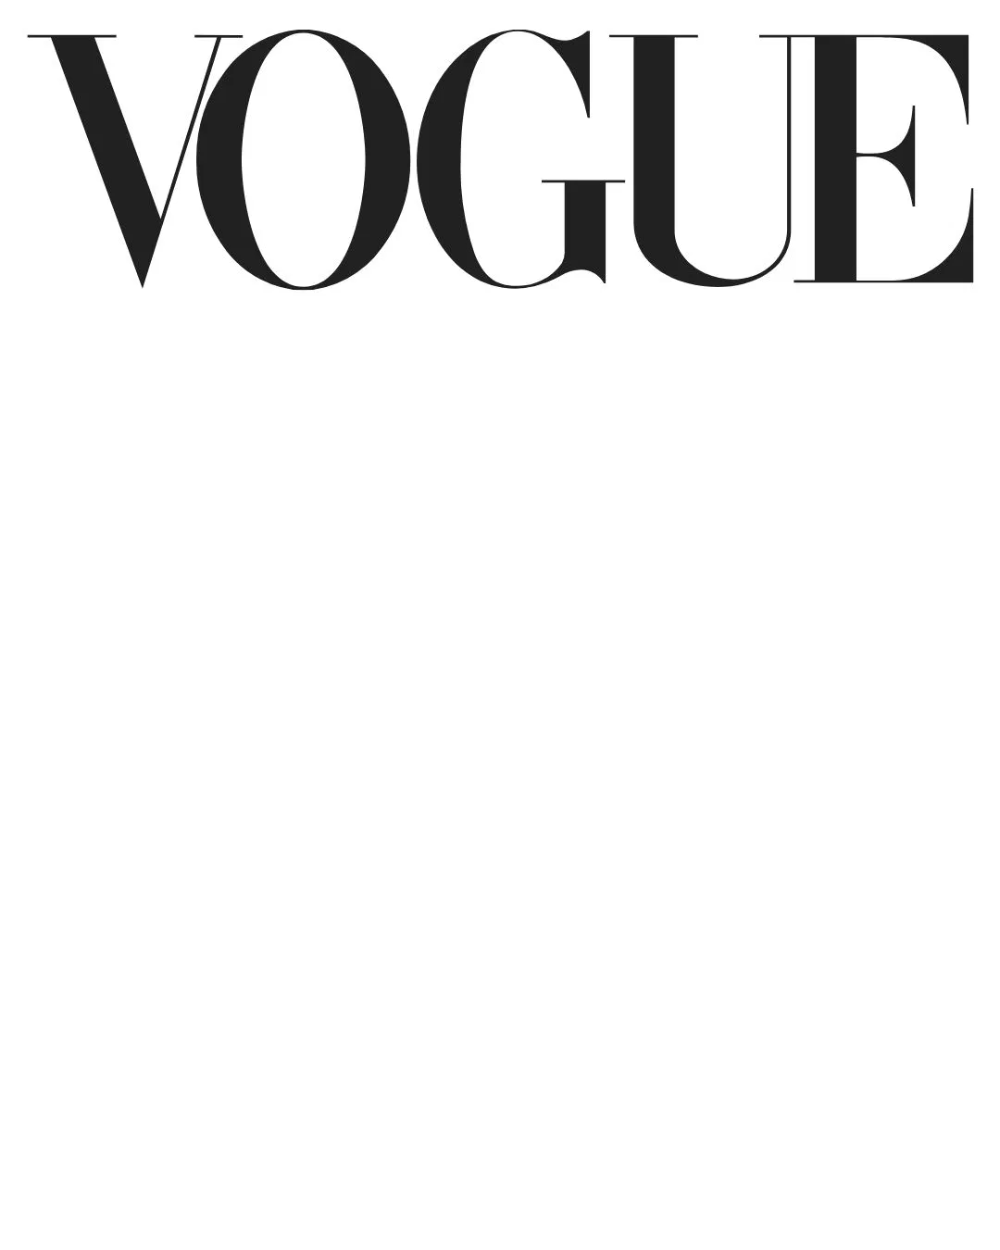 Vogue Challenge Tiktok In 2021 Vogue Photo Magazine Cover Template Aesthetic Template